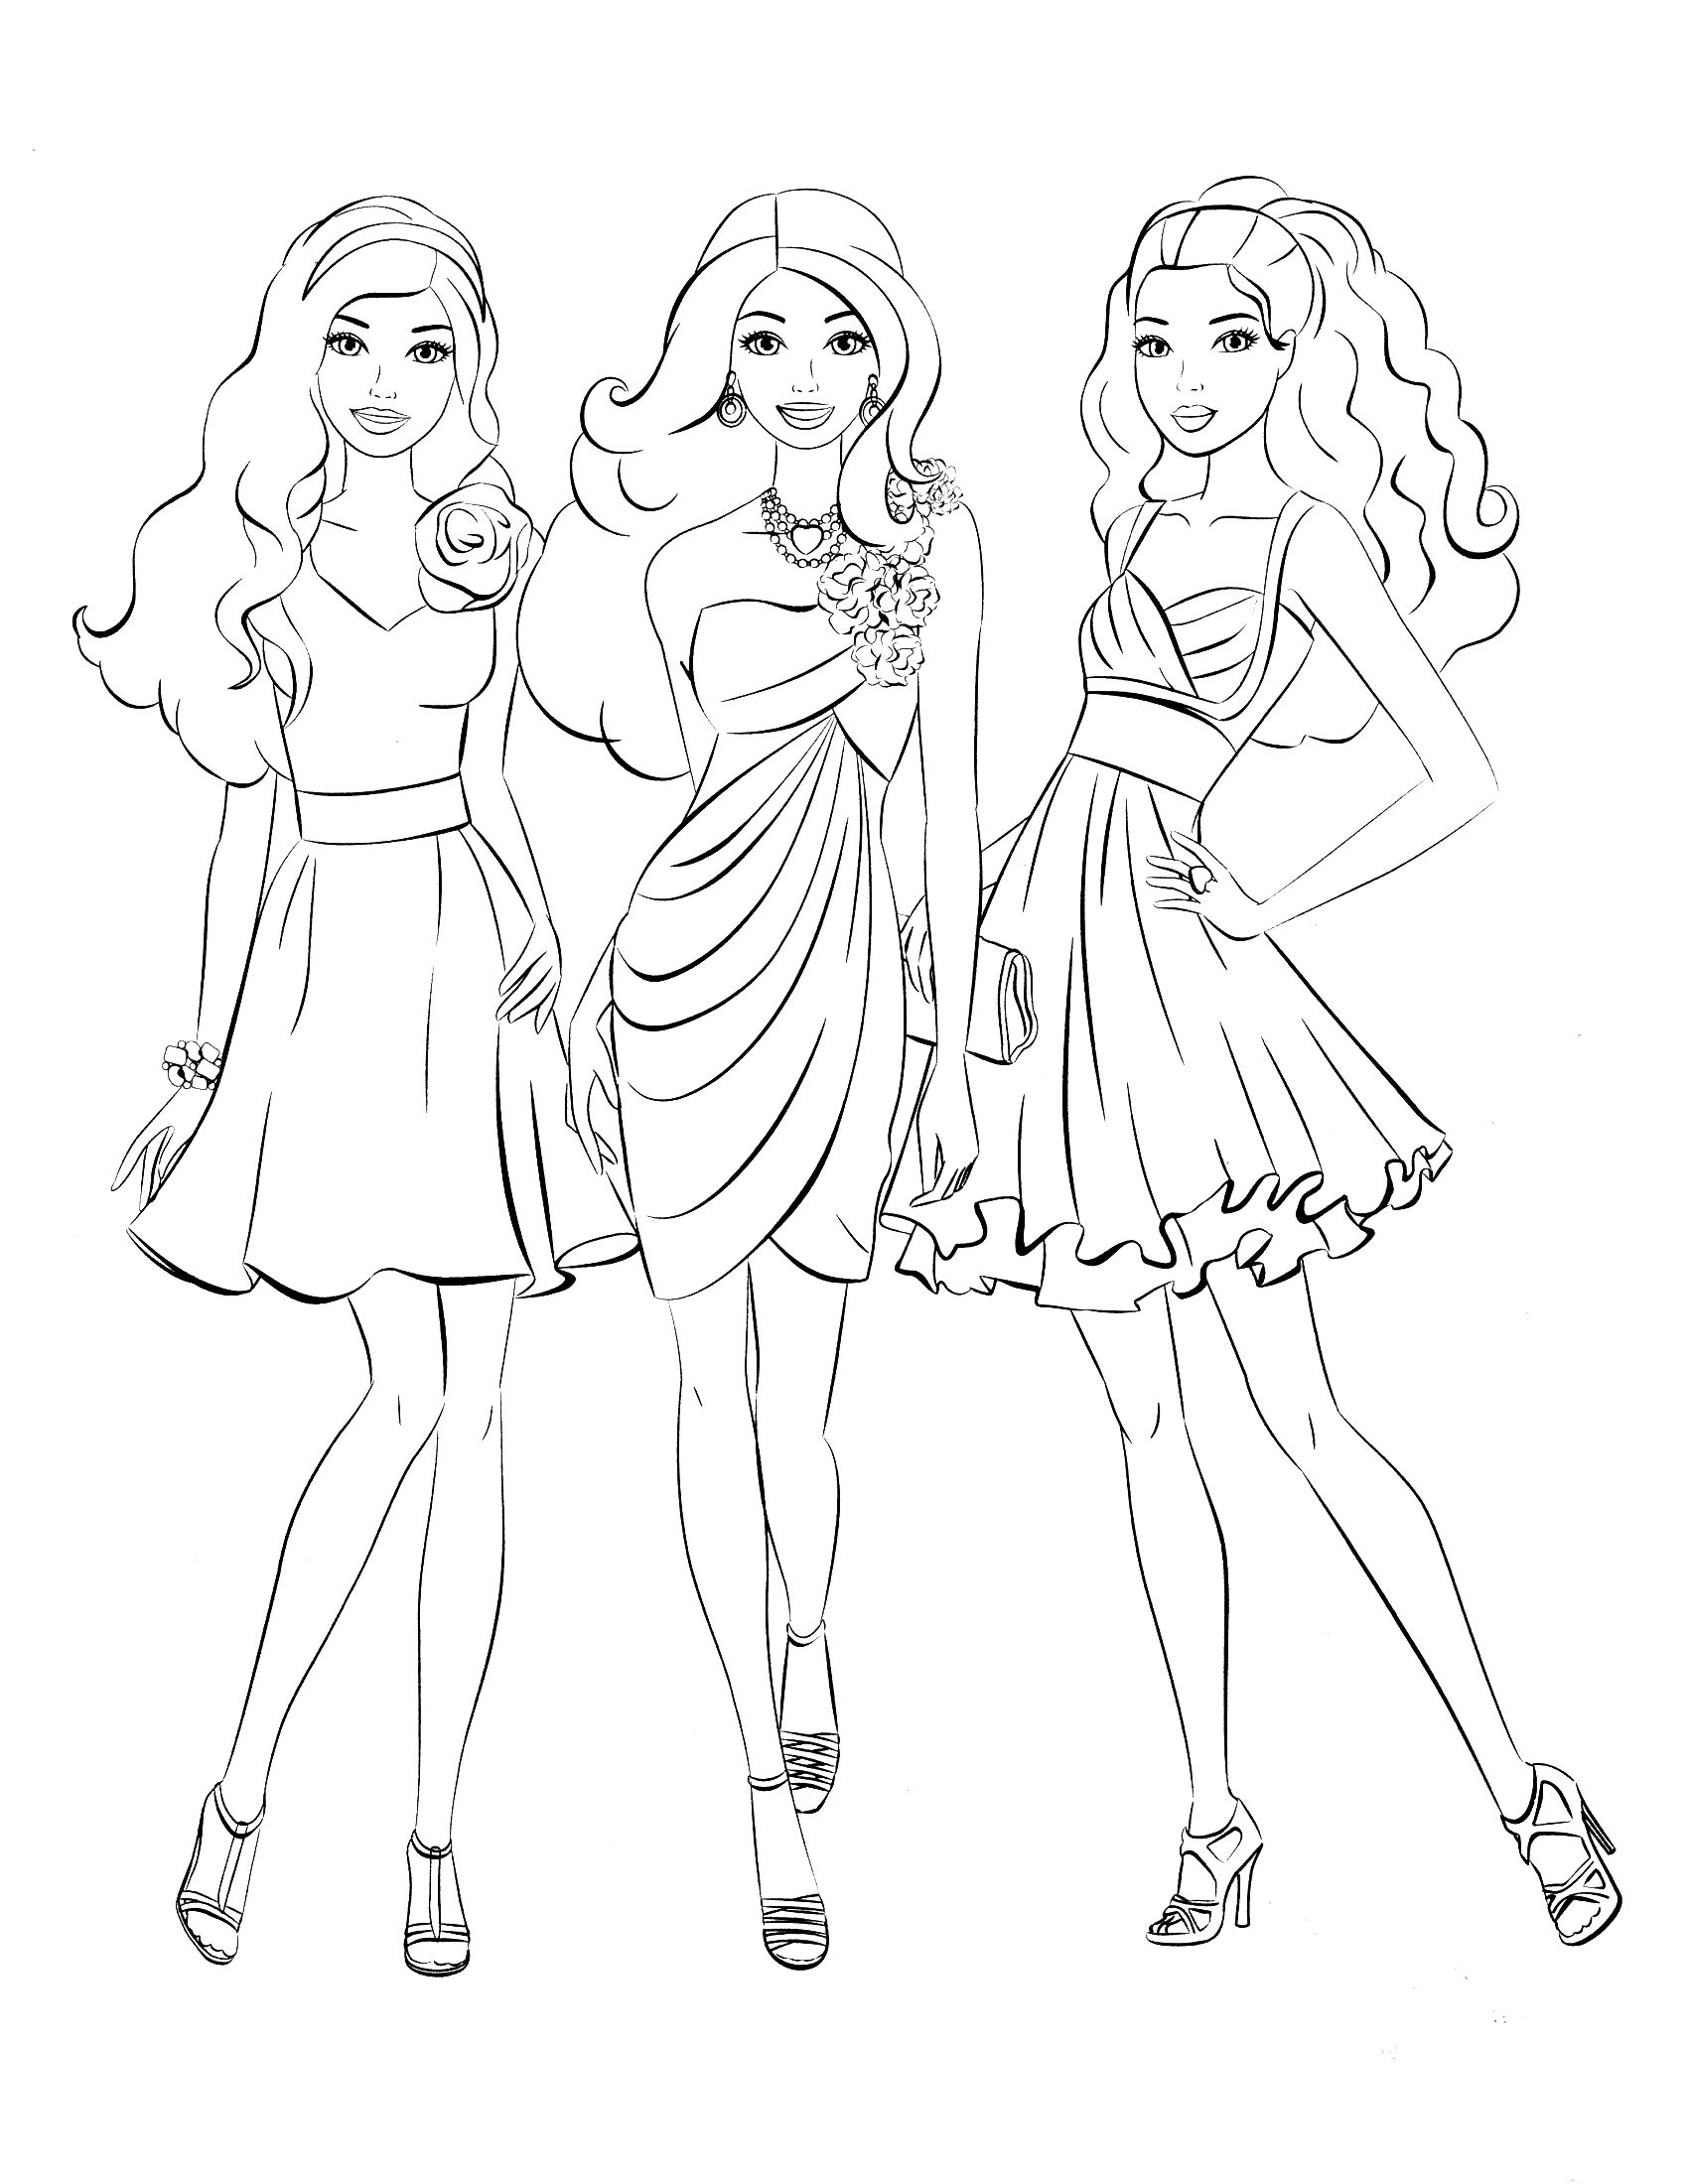 Elegant Barbie Coloring Pages Free Large Images Manahil Barbie